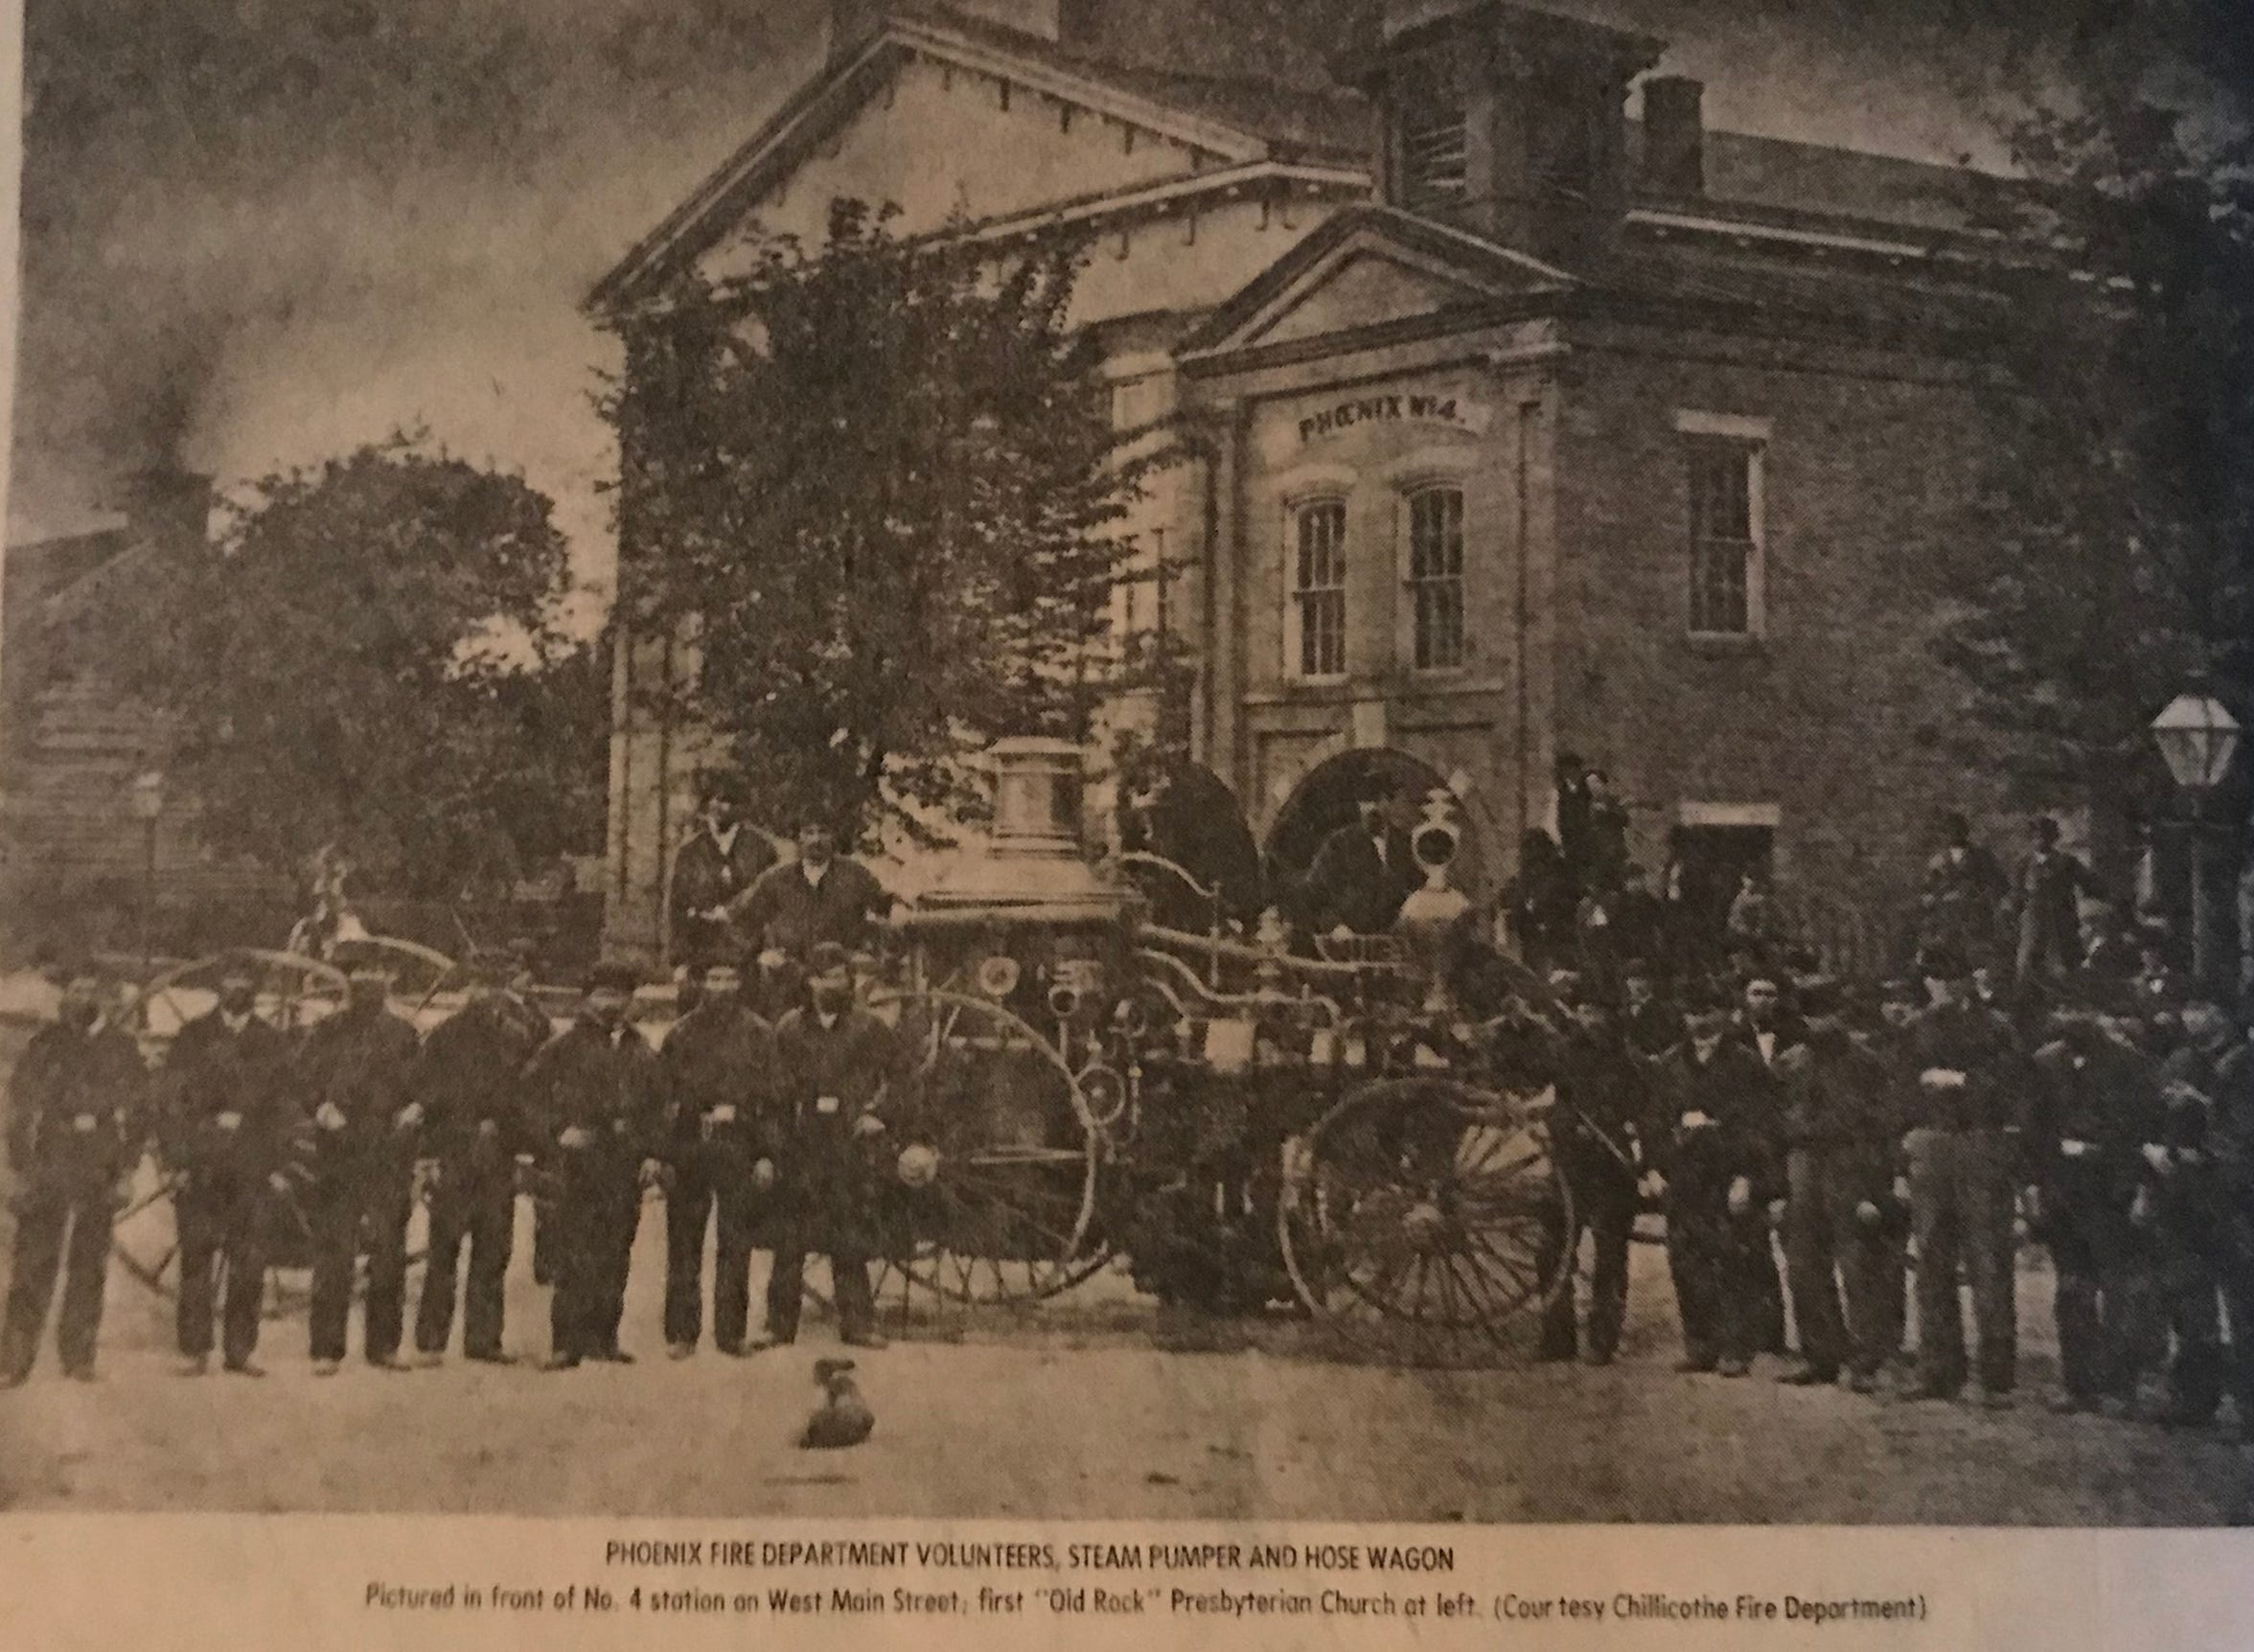 Before the Chillicothe Fire Department was formed in 1879, the city was served by volunteer outfits including the Phoenix Fire Department pictured here on West Main Street in front of their station by the Presbyterian Church.